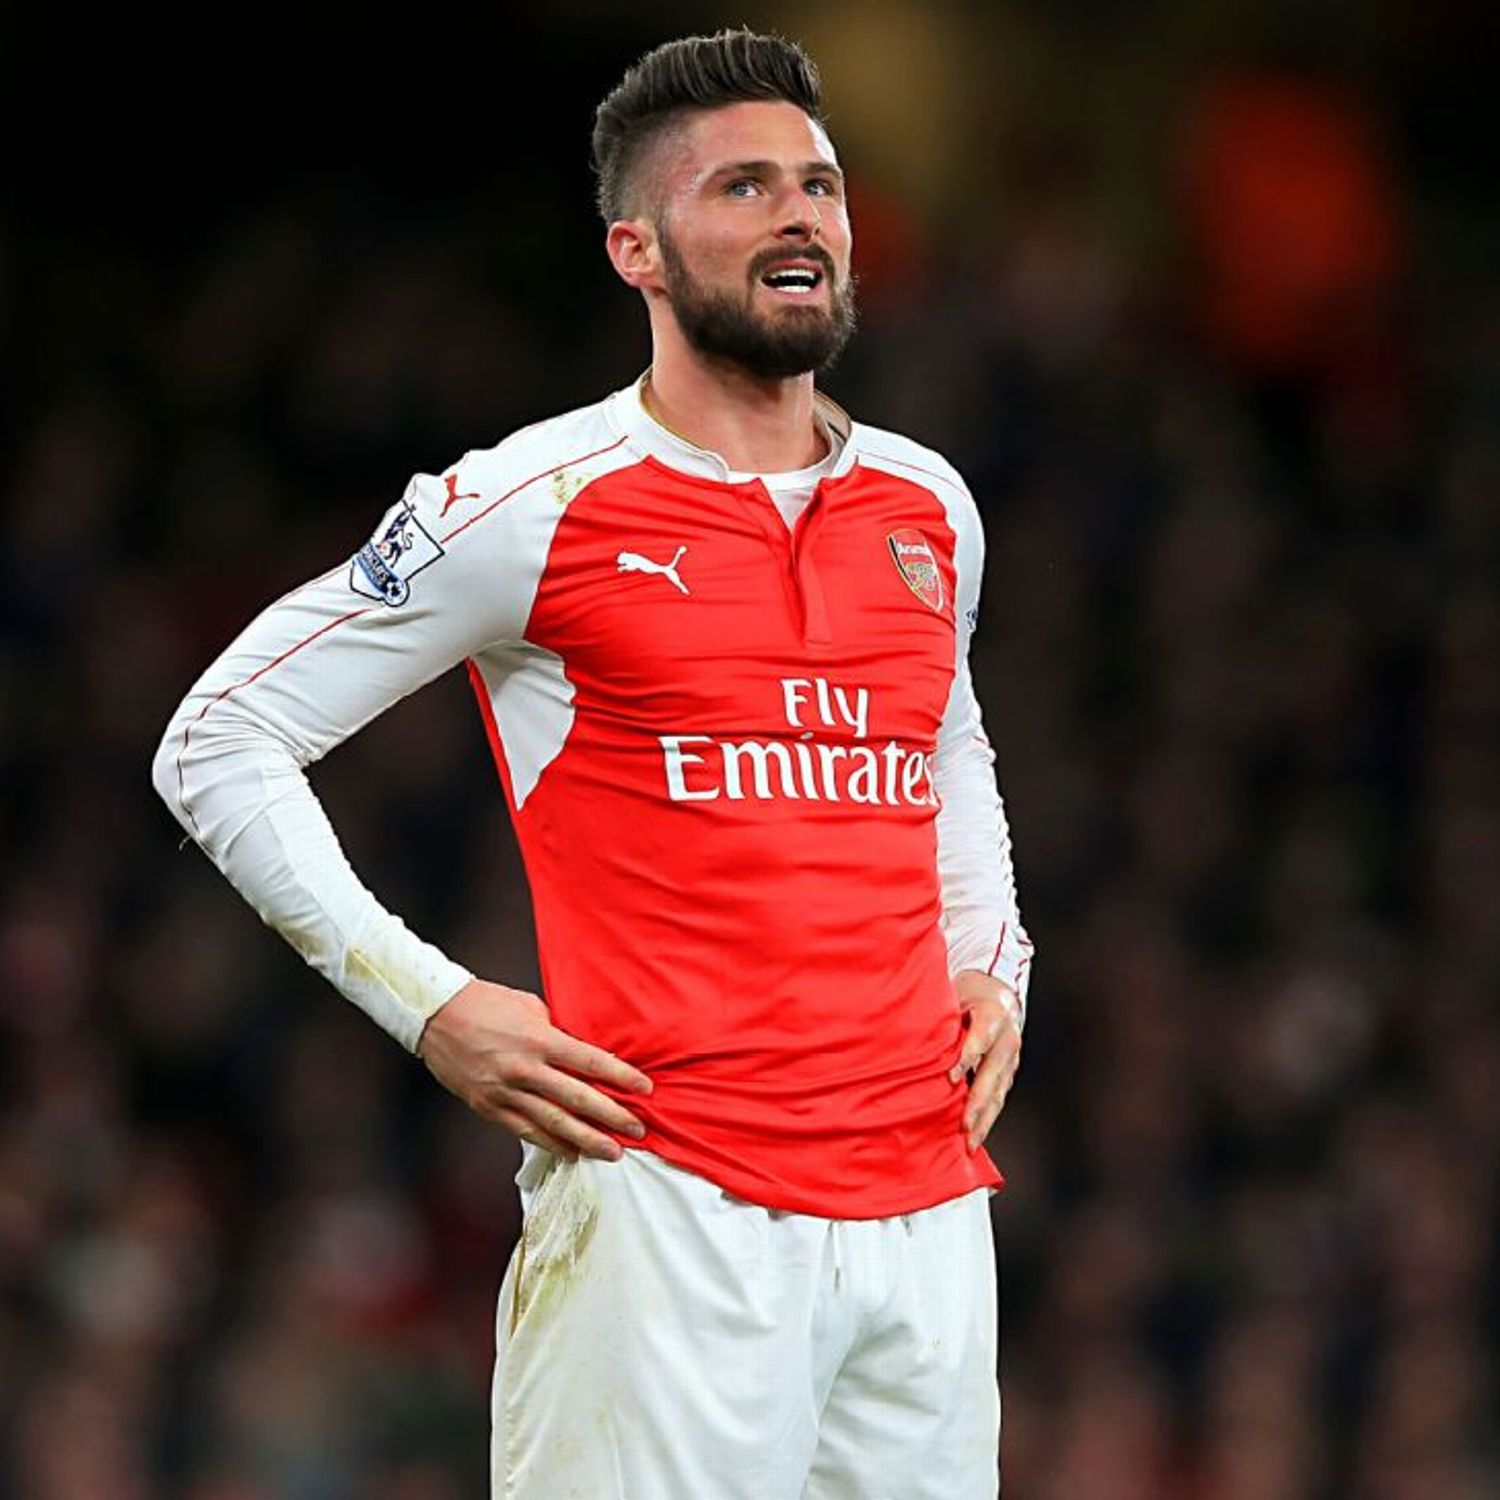 Olivier giroud struggles at arsenal down to his poor for Olivier giroud squadre attuali